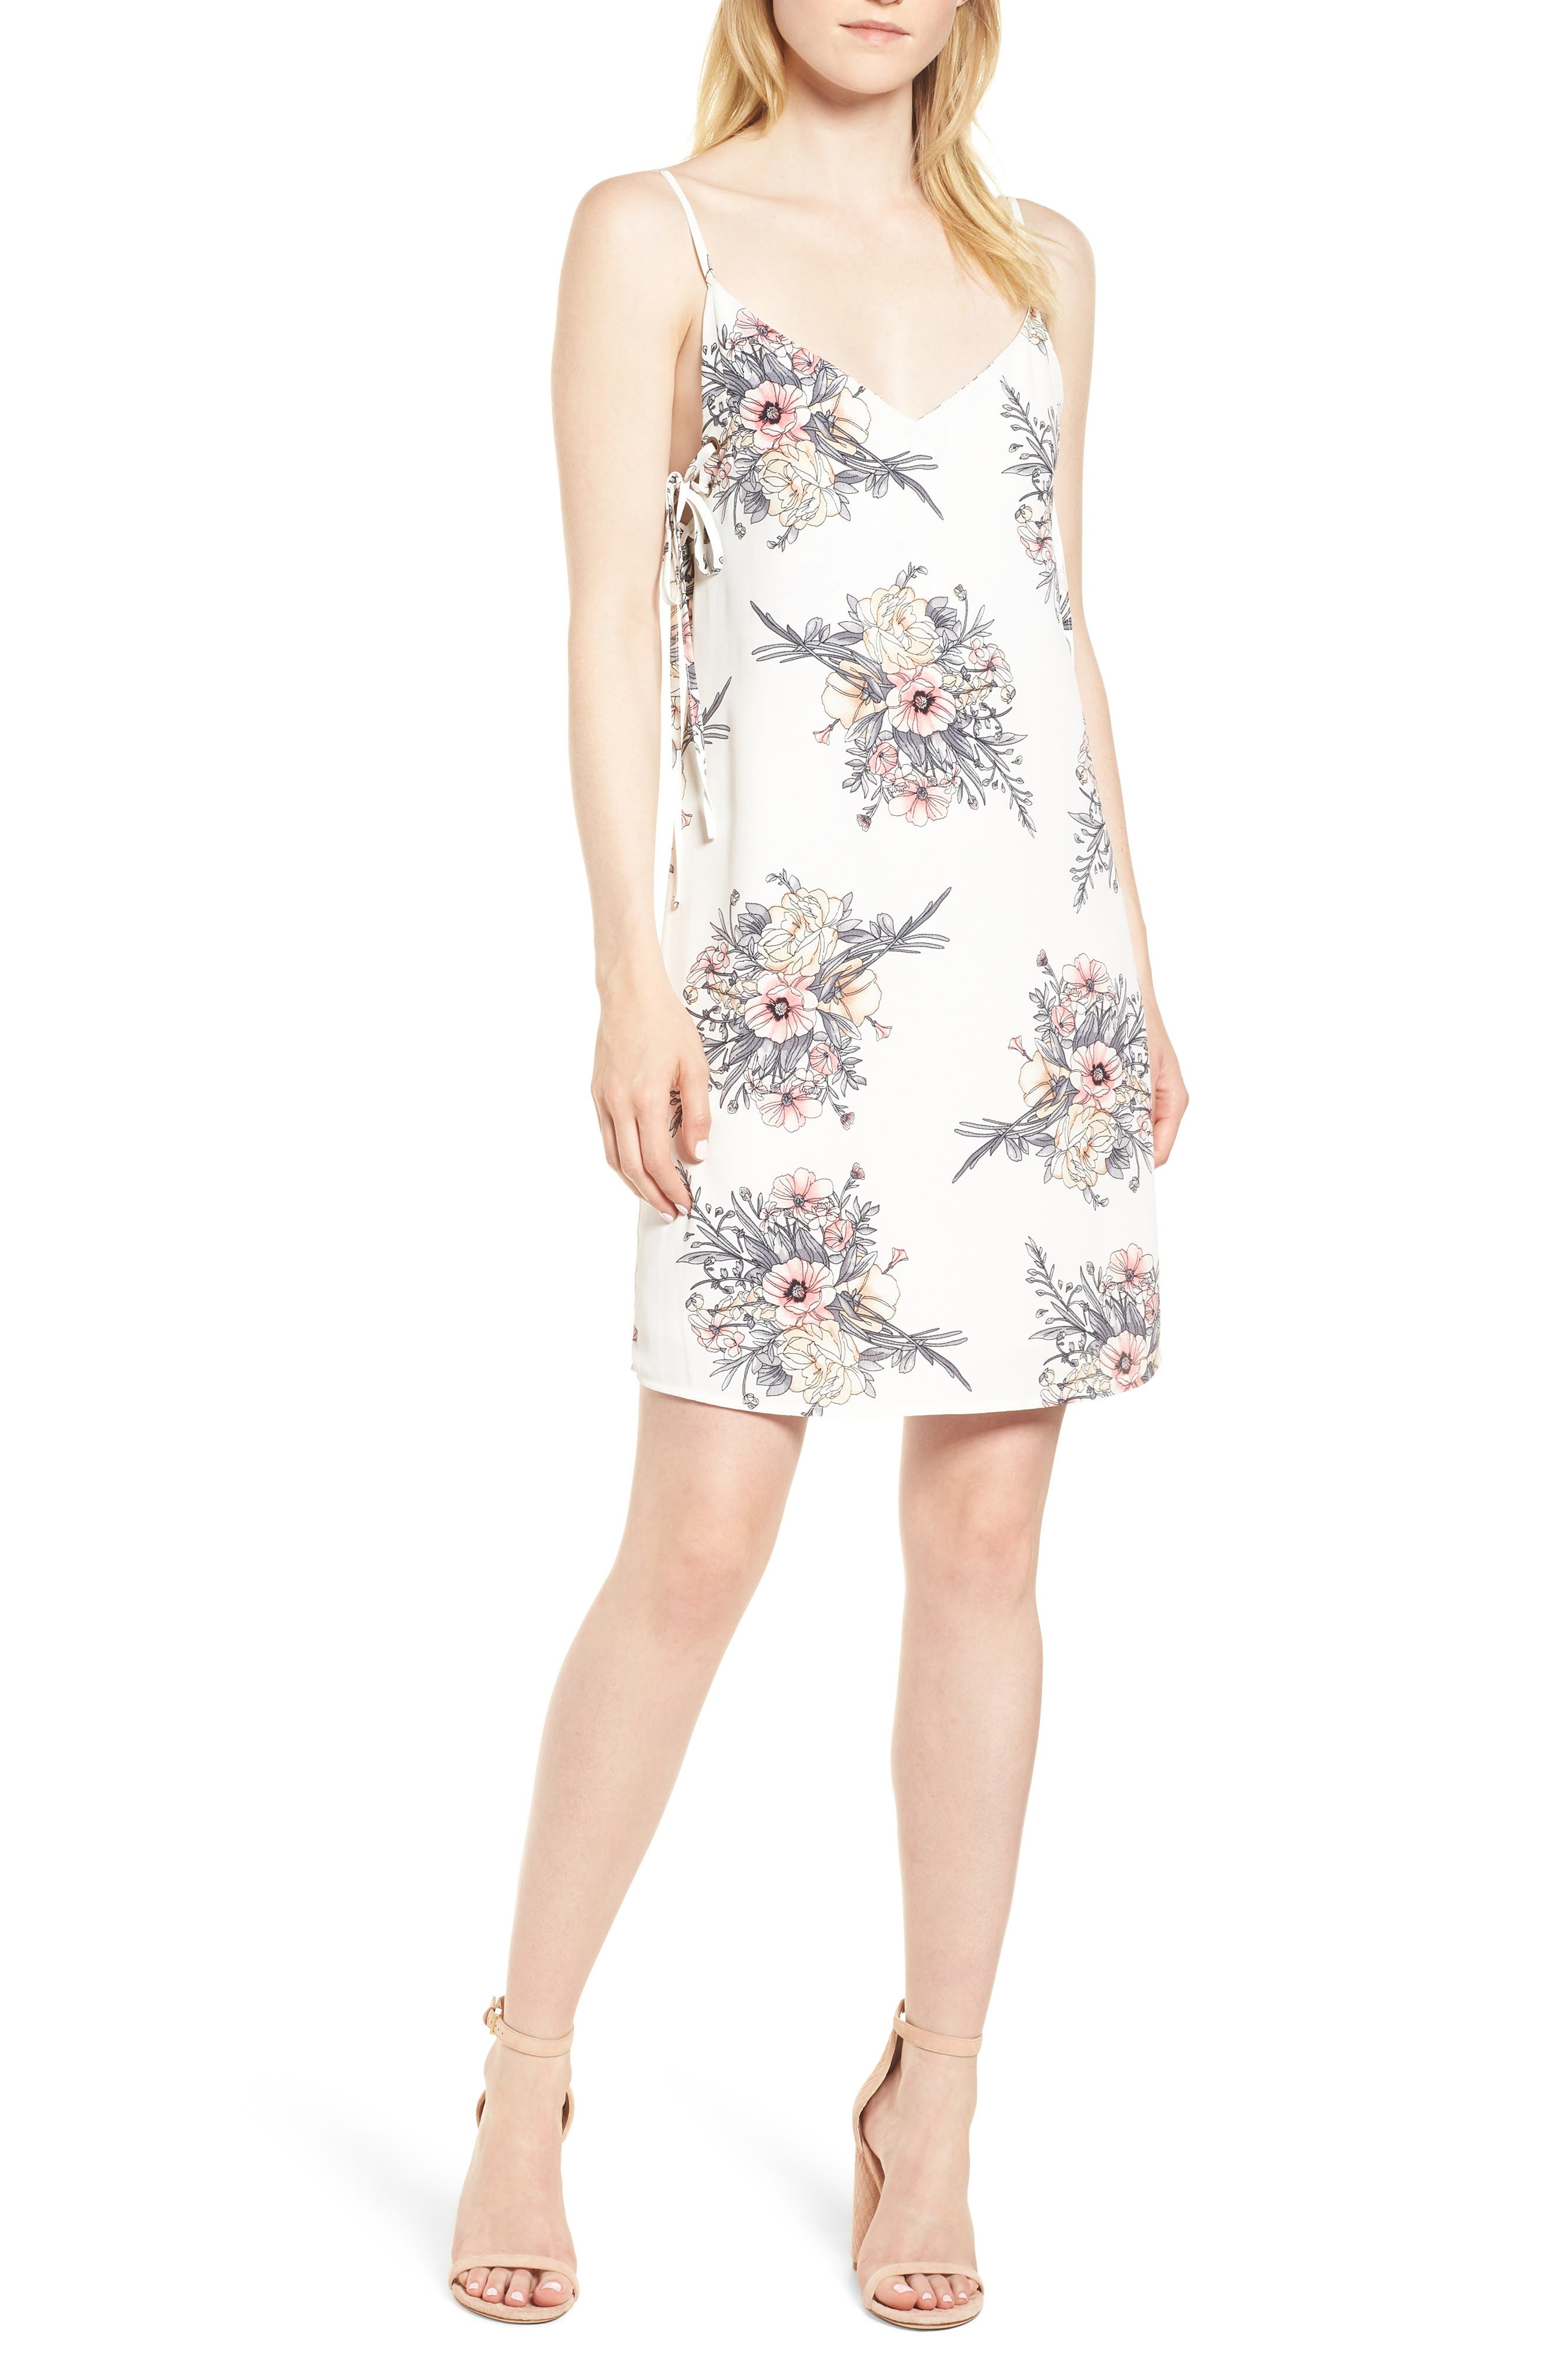 BISHOP + YOUNG Summer of Love Lace-Up Dress, Main, color, 191